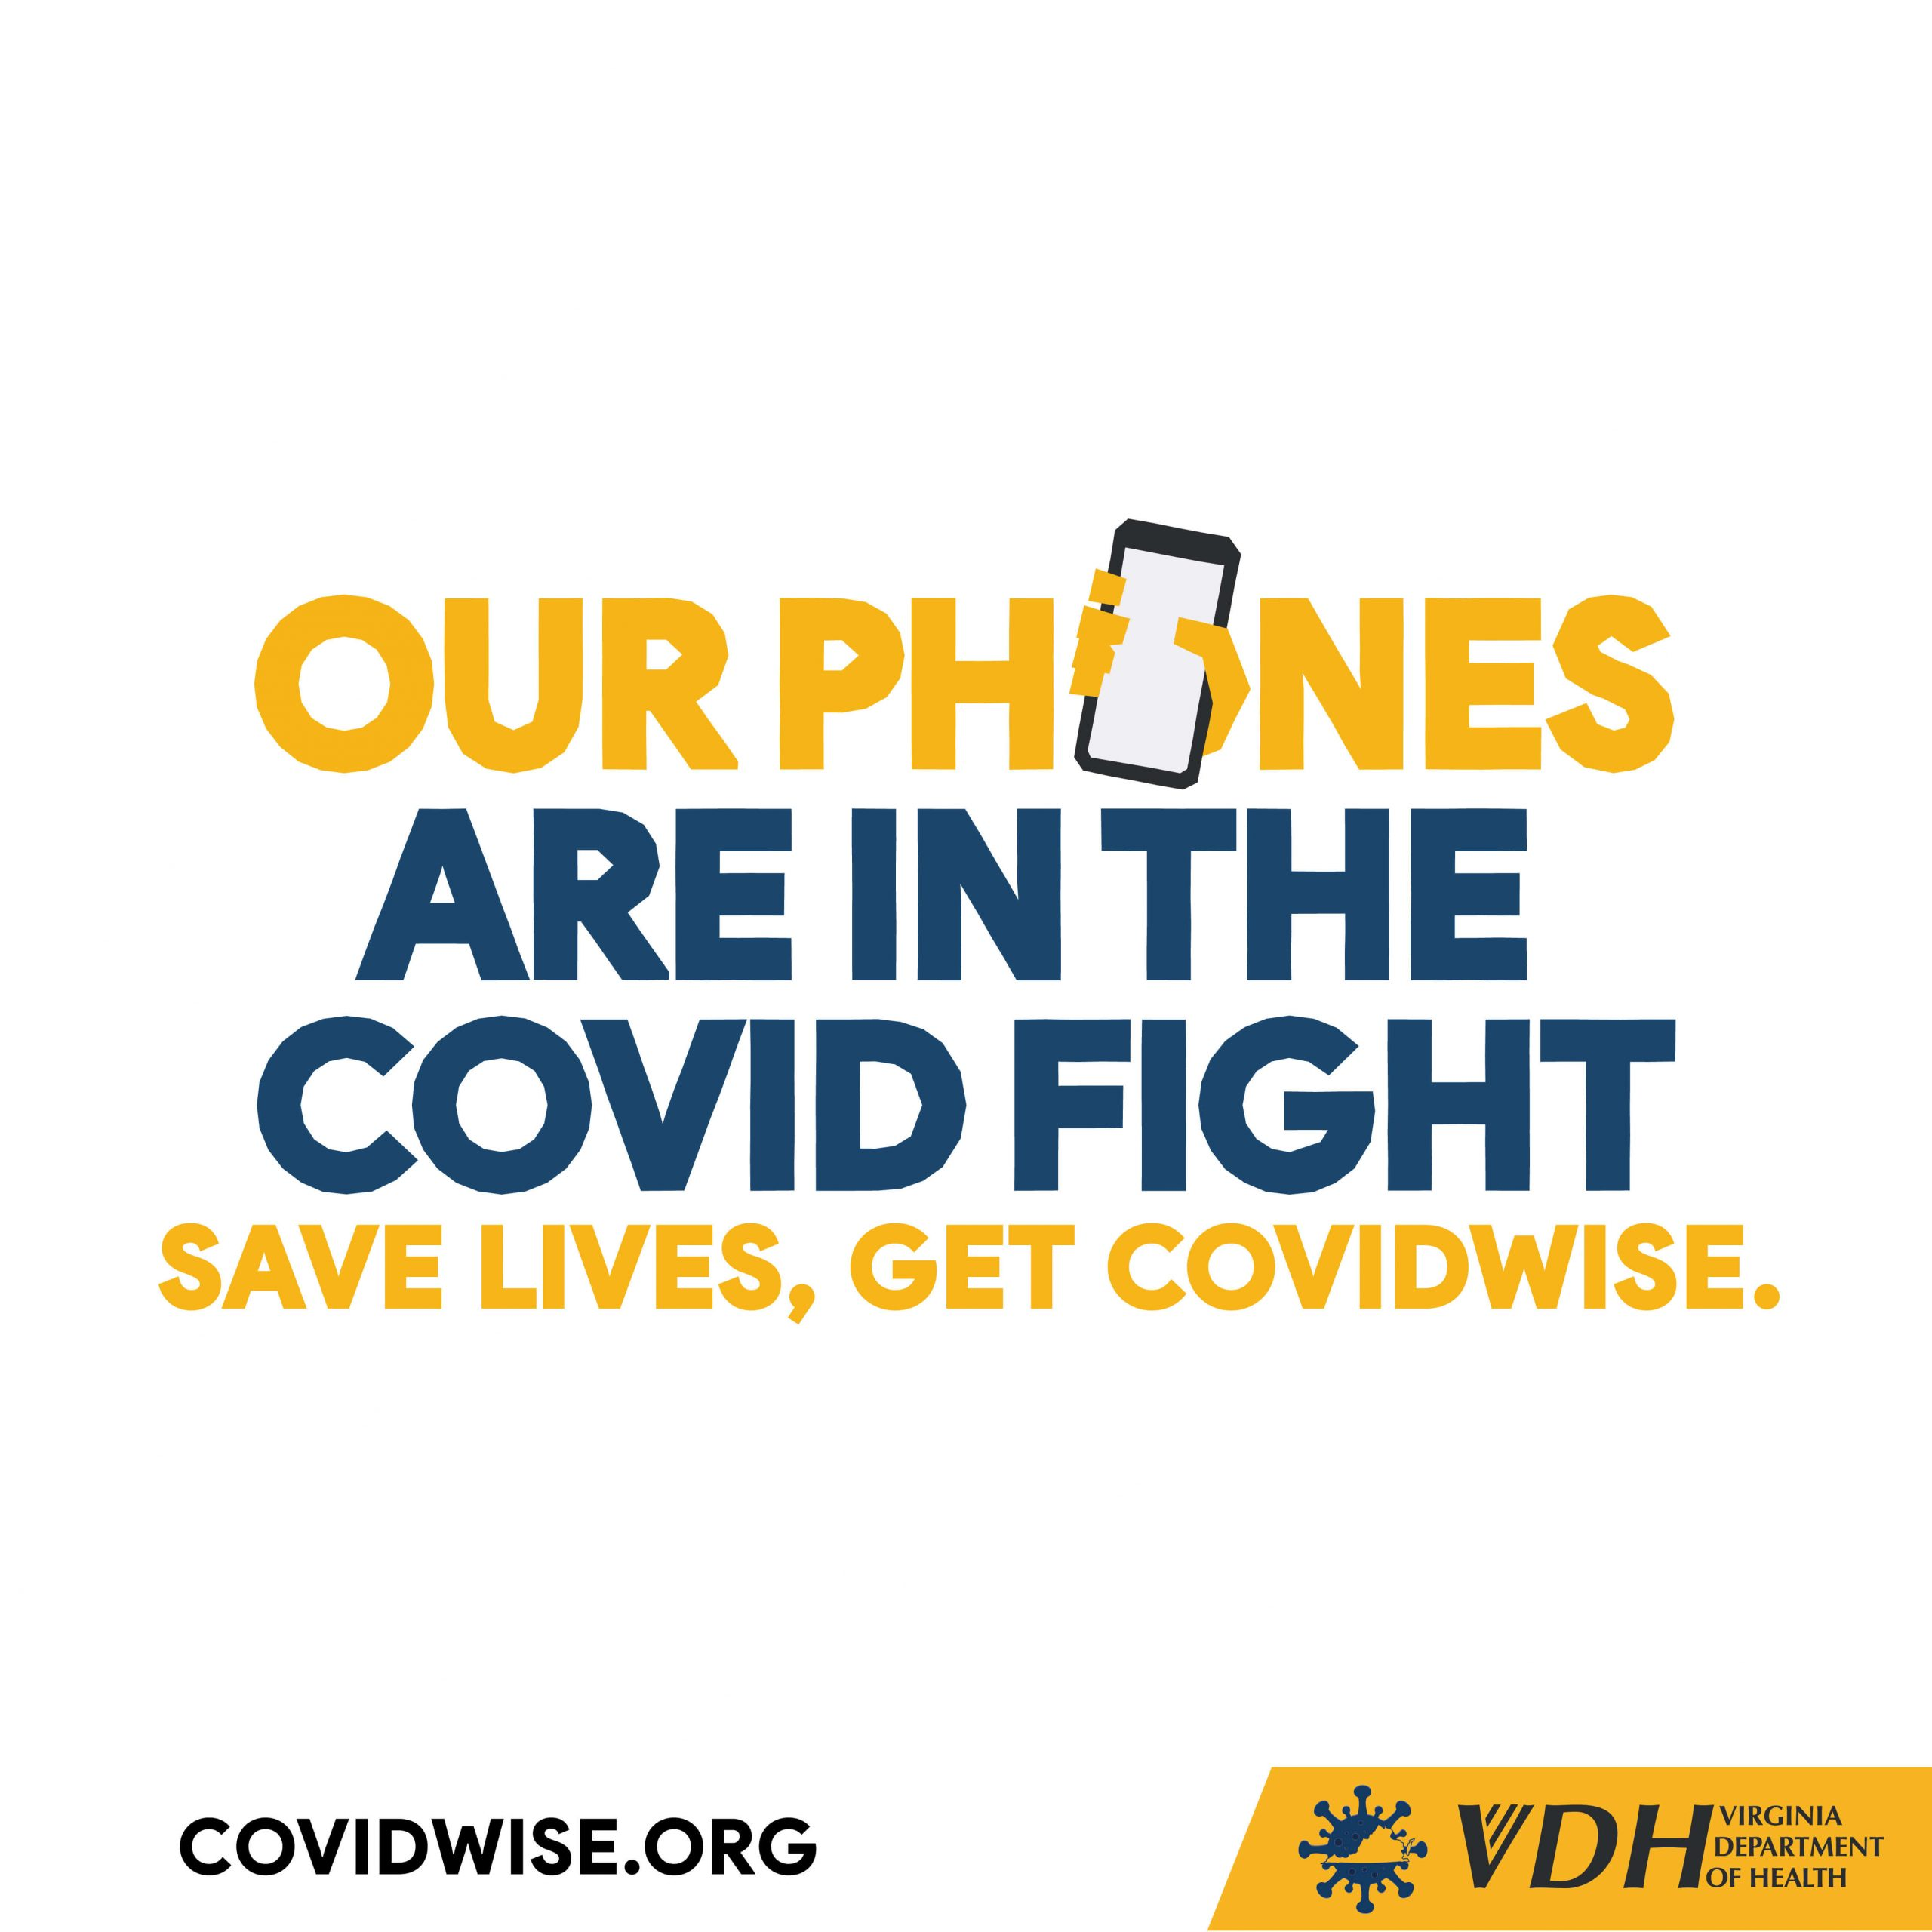 COVIDWISE - Our Phones Are in the COVID Fight